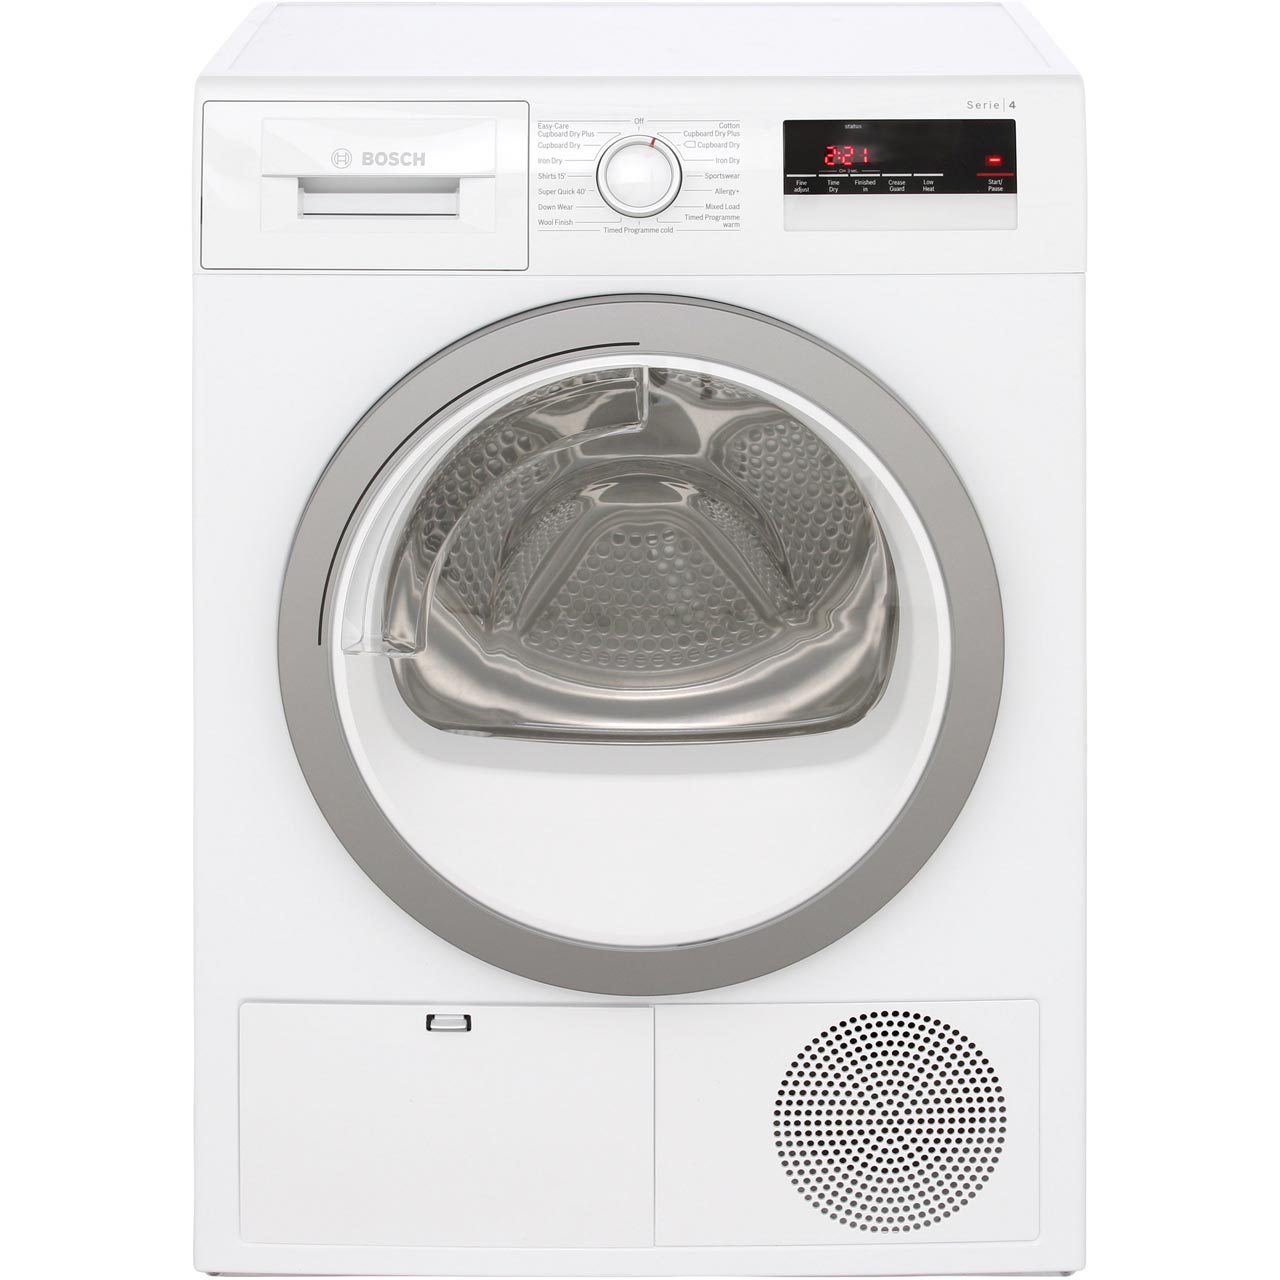 Bosch Dryer: Washing Machines, Fridges & More